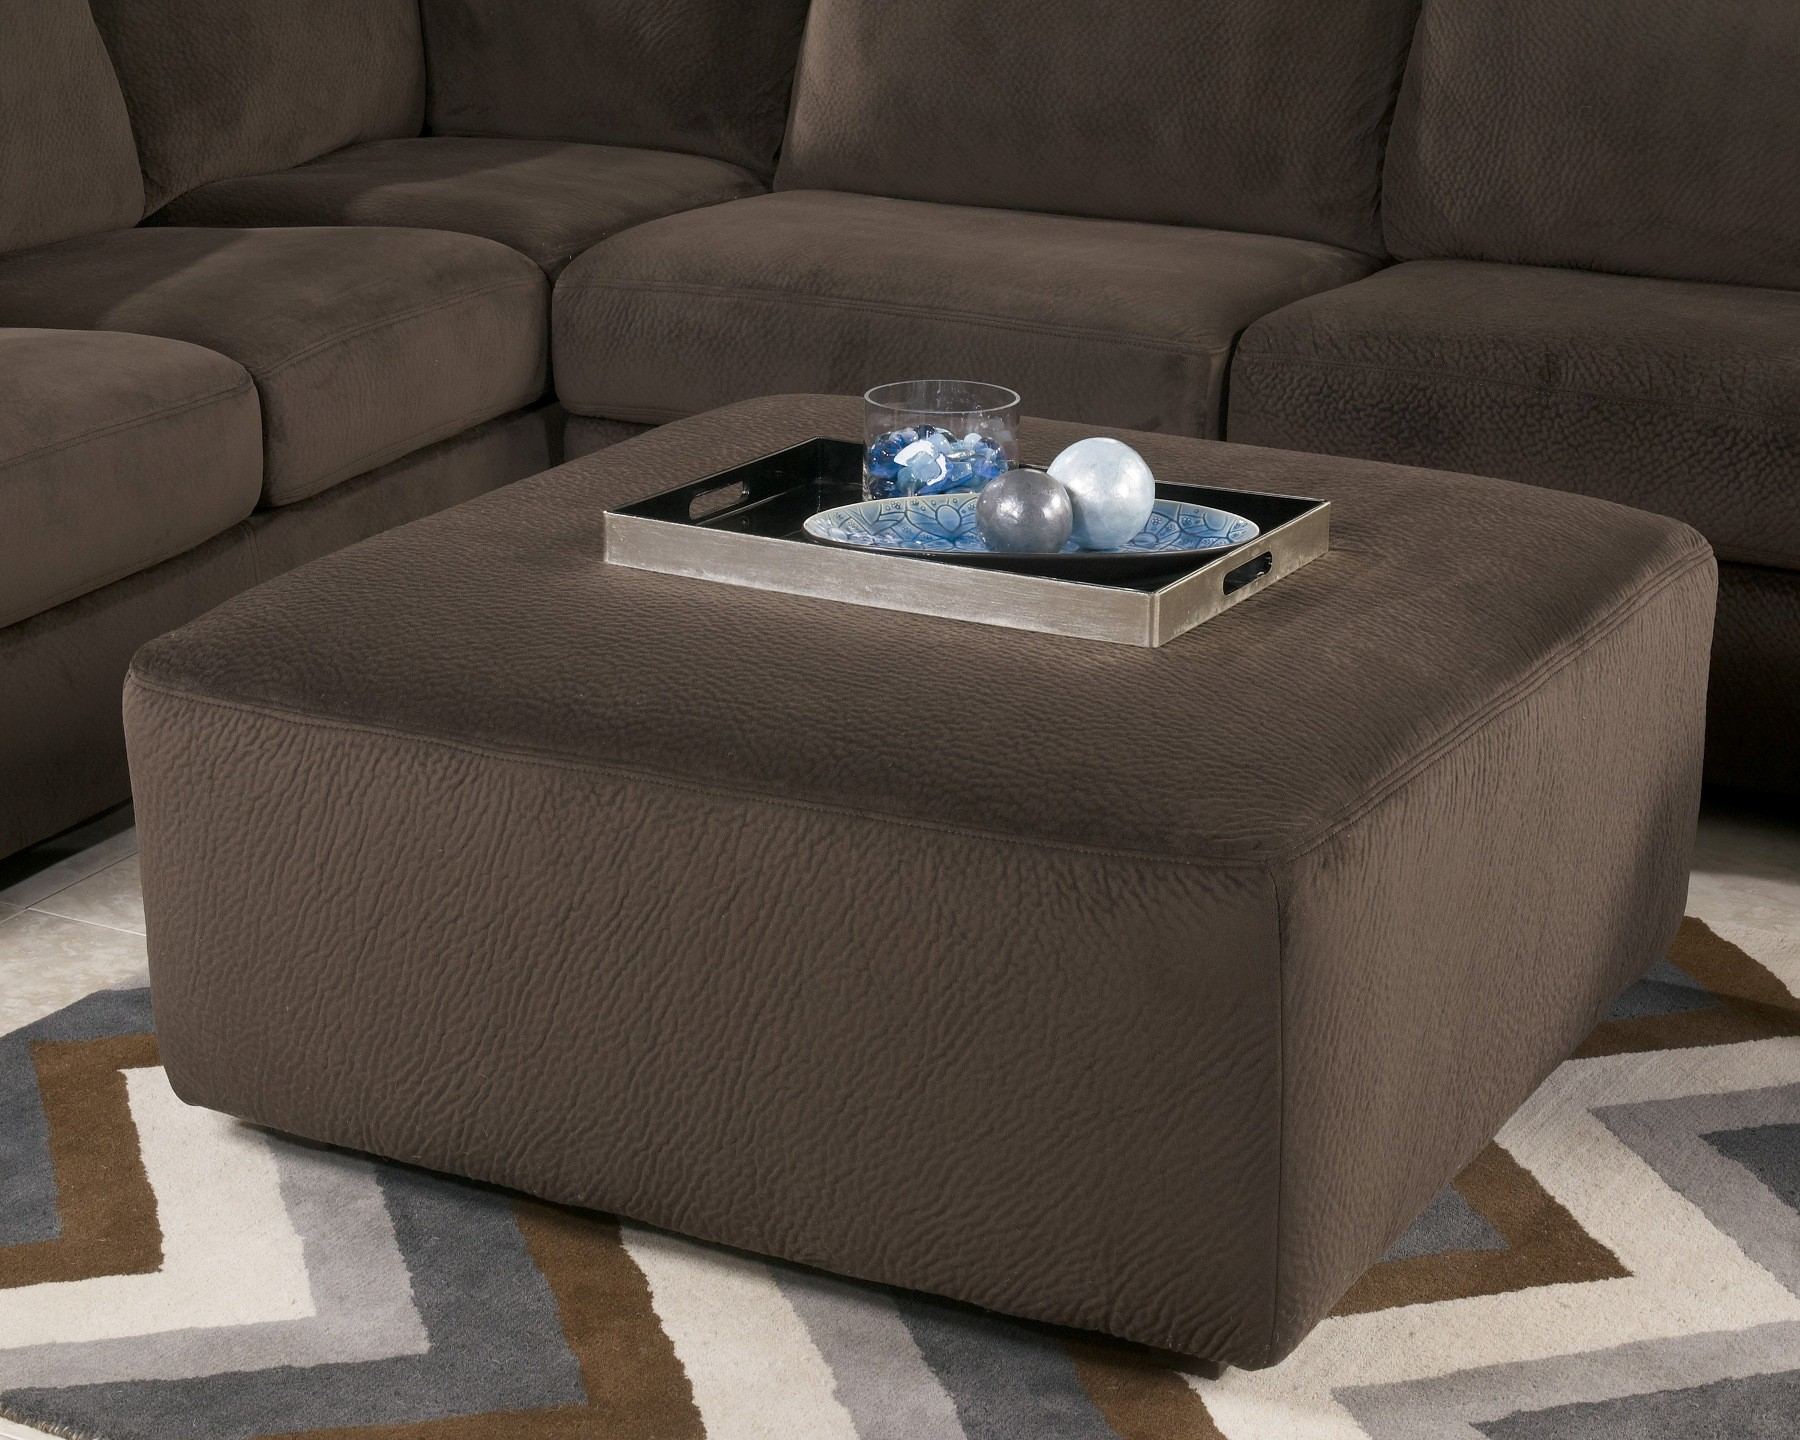 Jessa Place Chocolate Oversized Accent Ottoman : jessa place sectional - Sectionals, Sofas & Couches